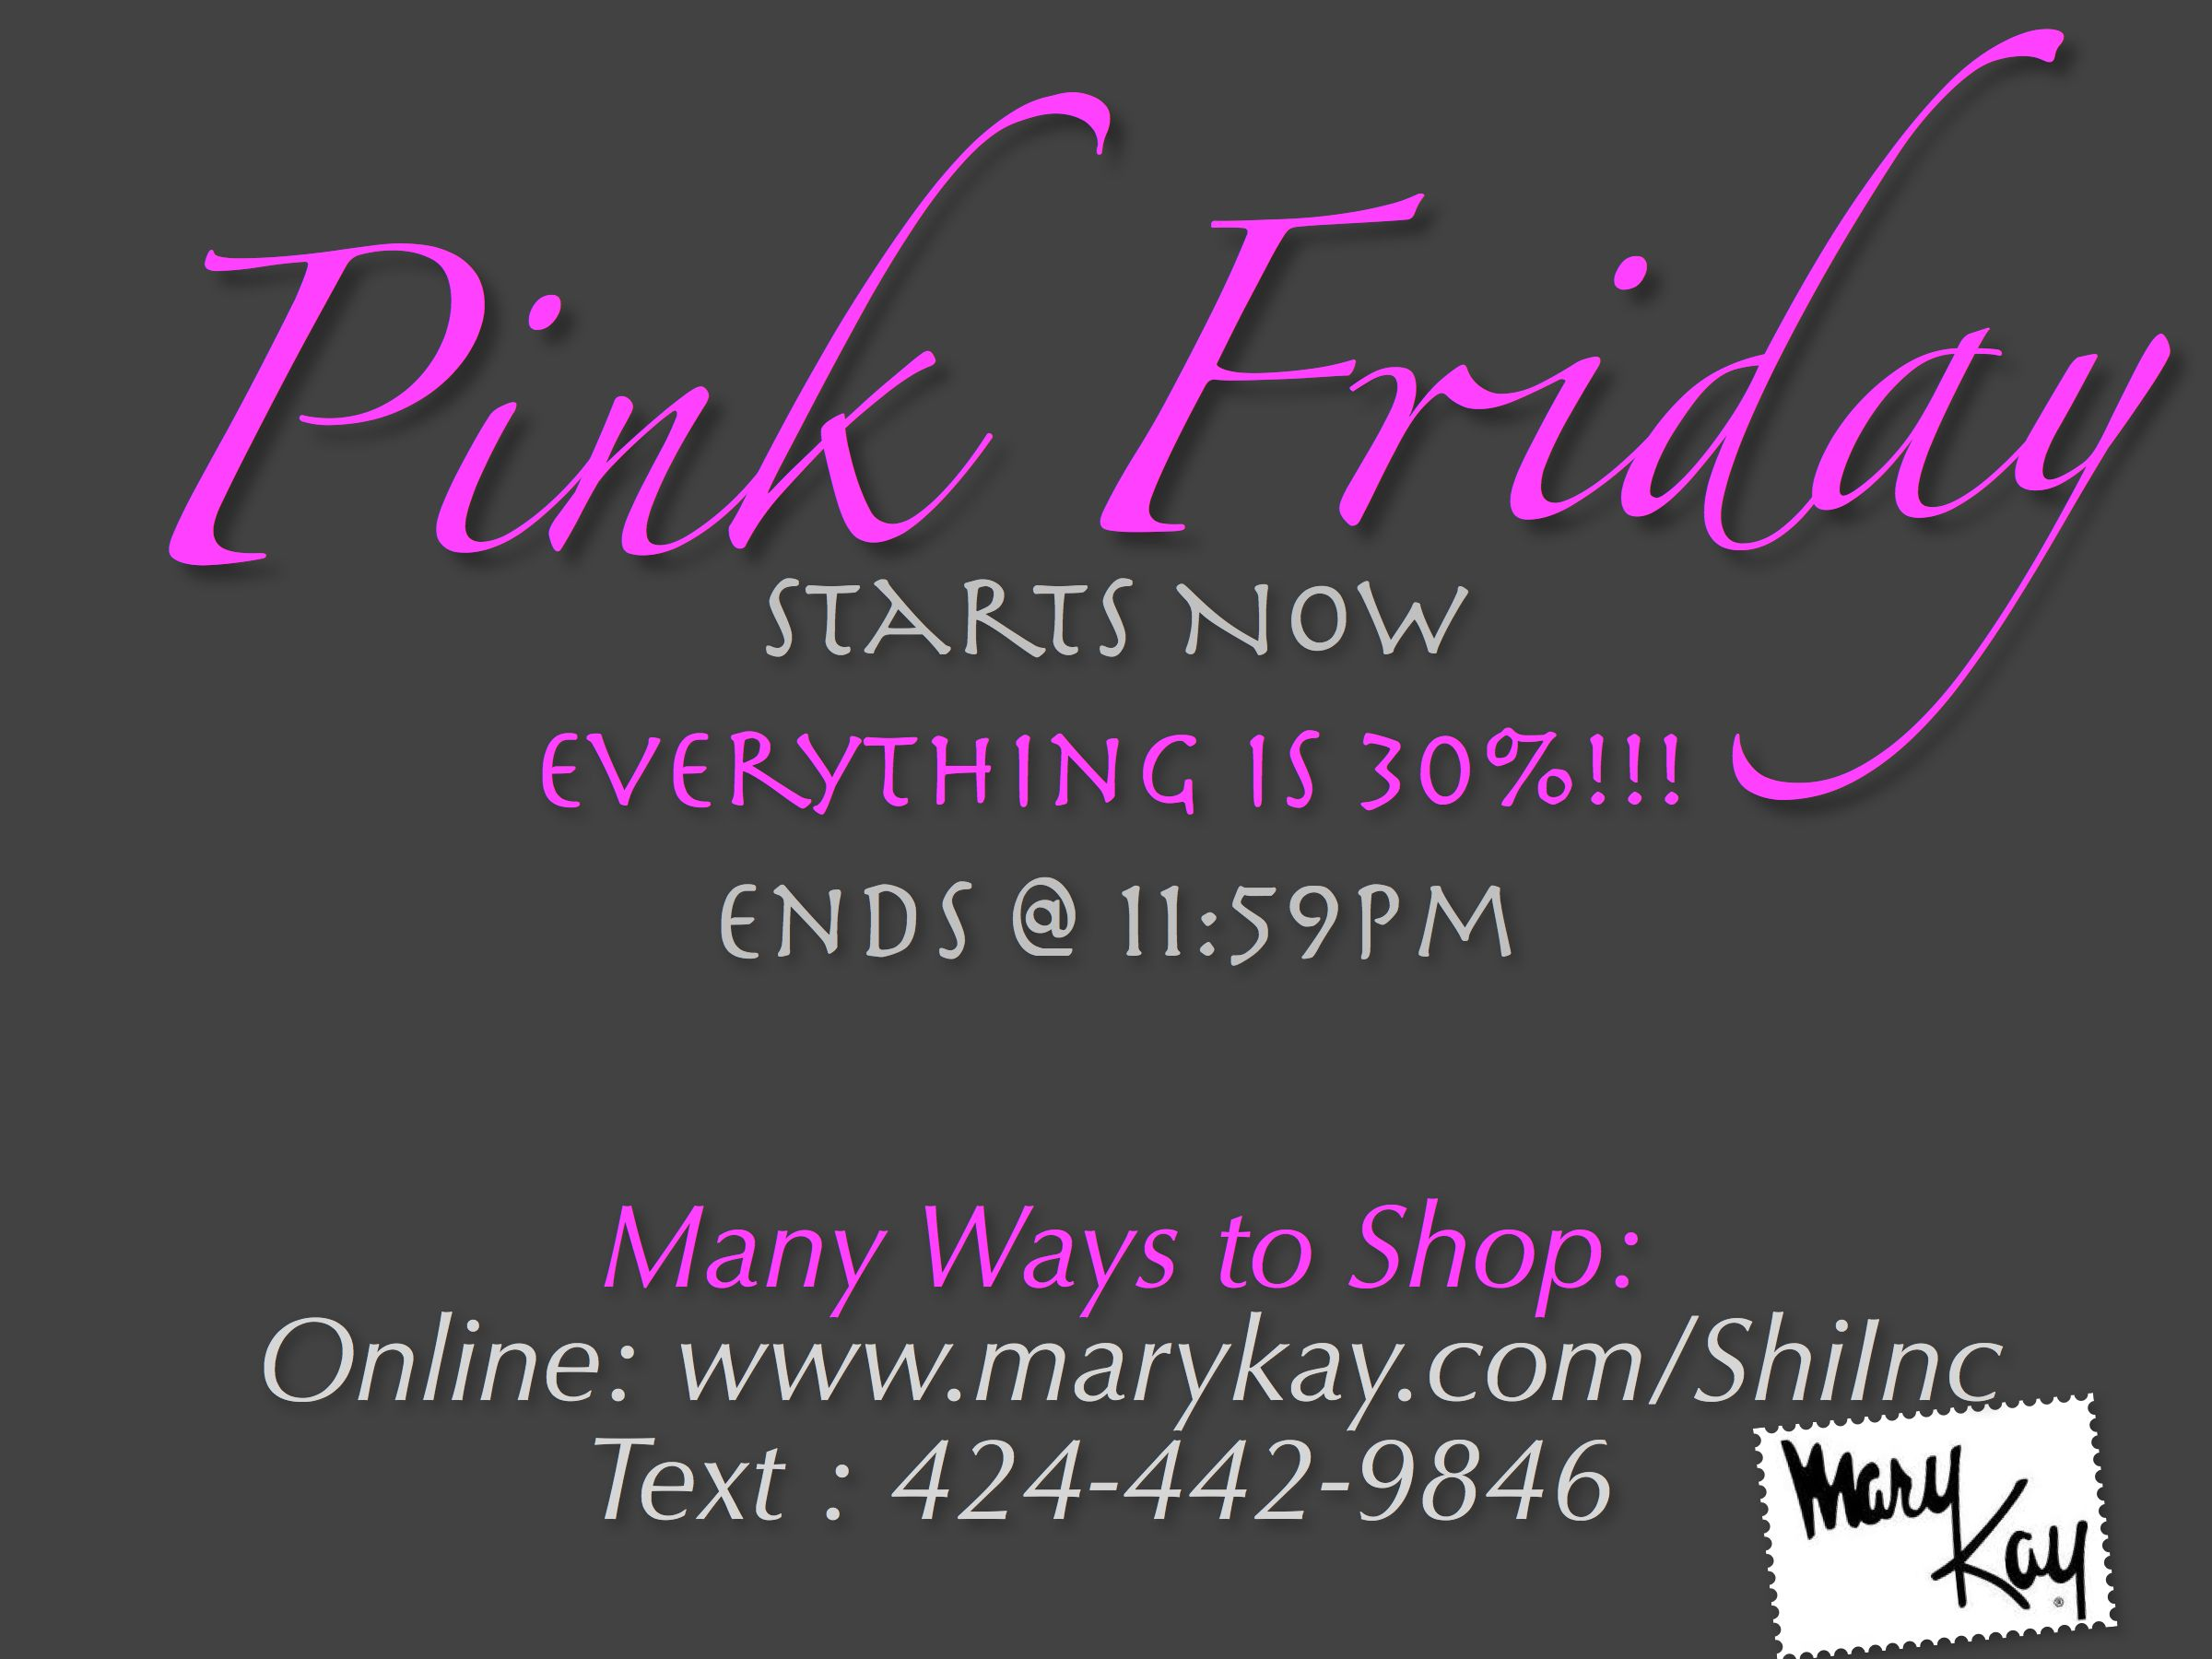 Pink Friday is here!!! Mary kay